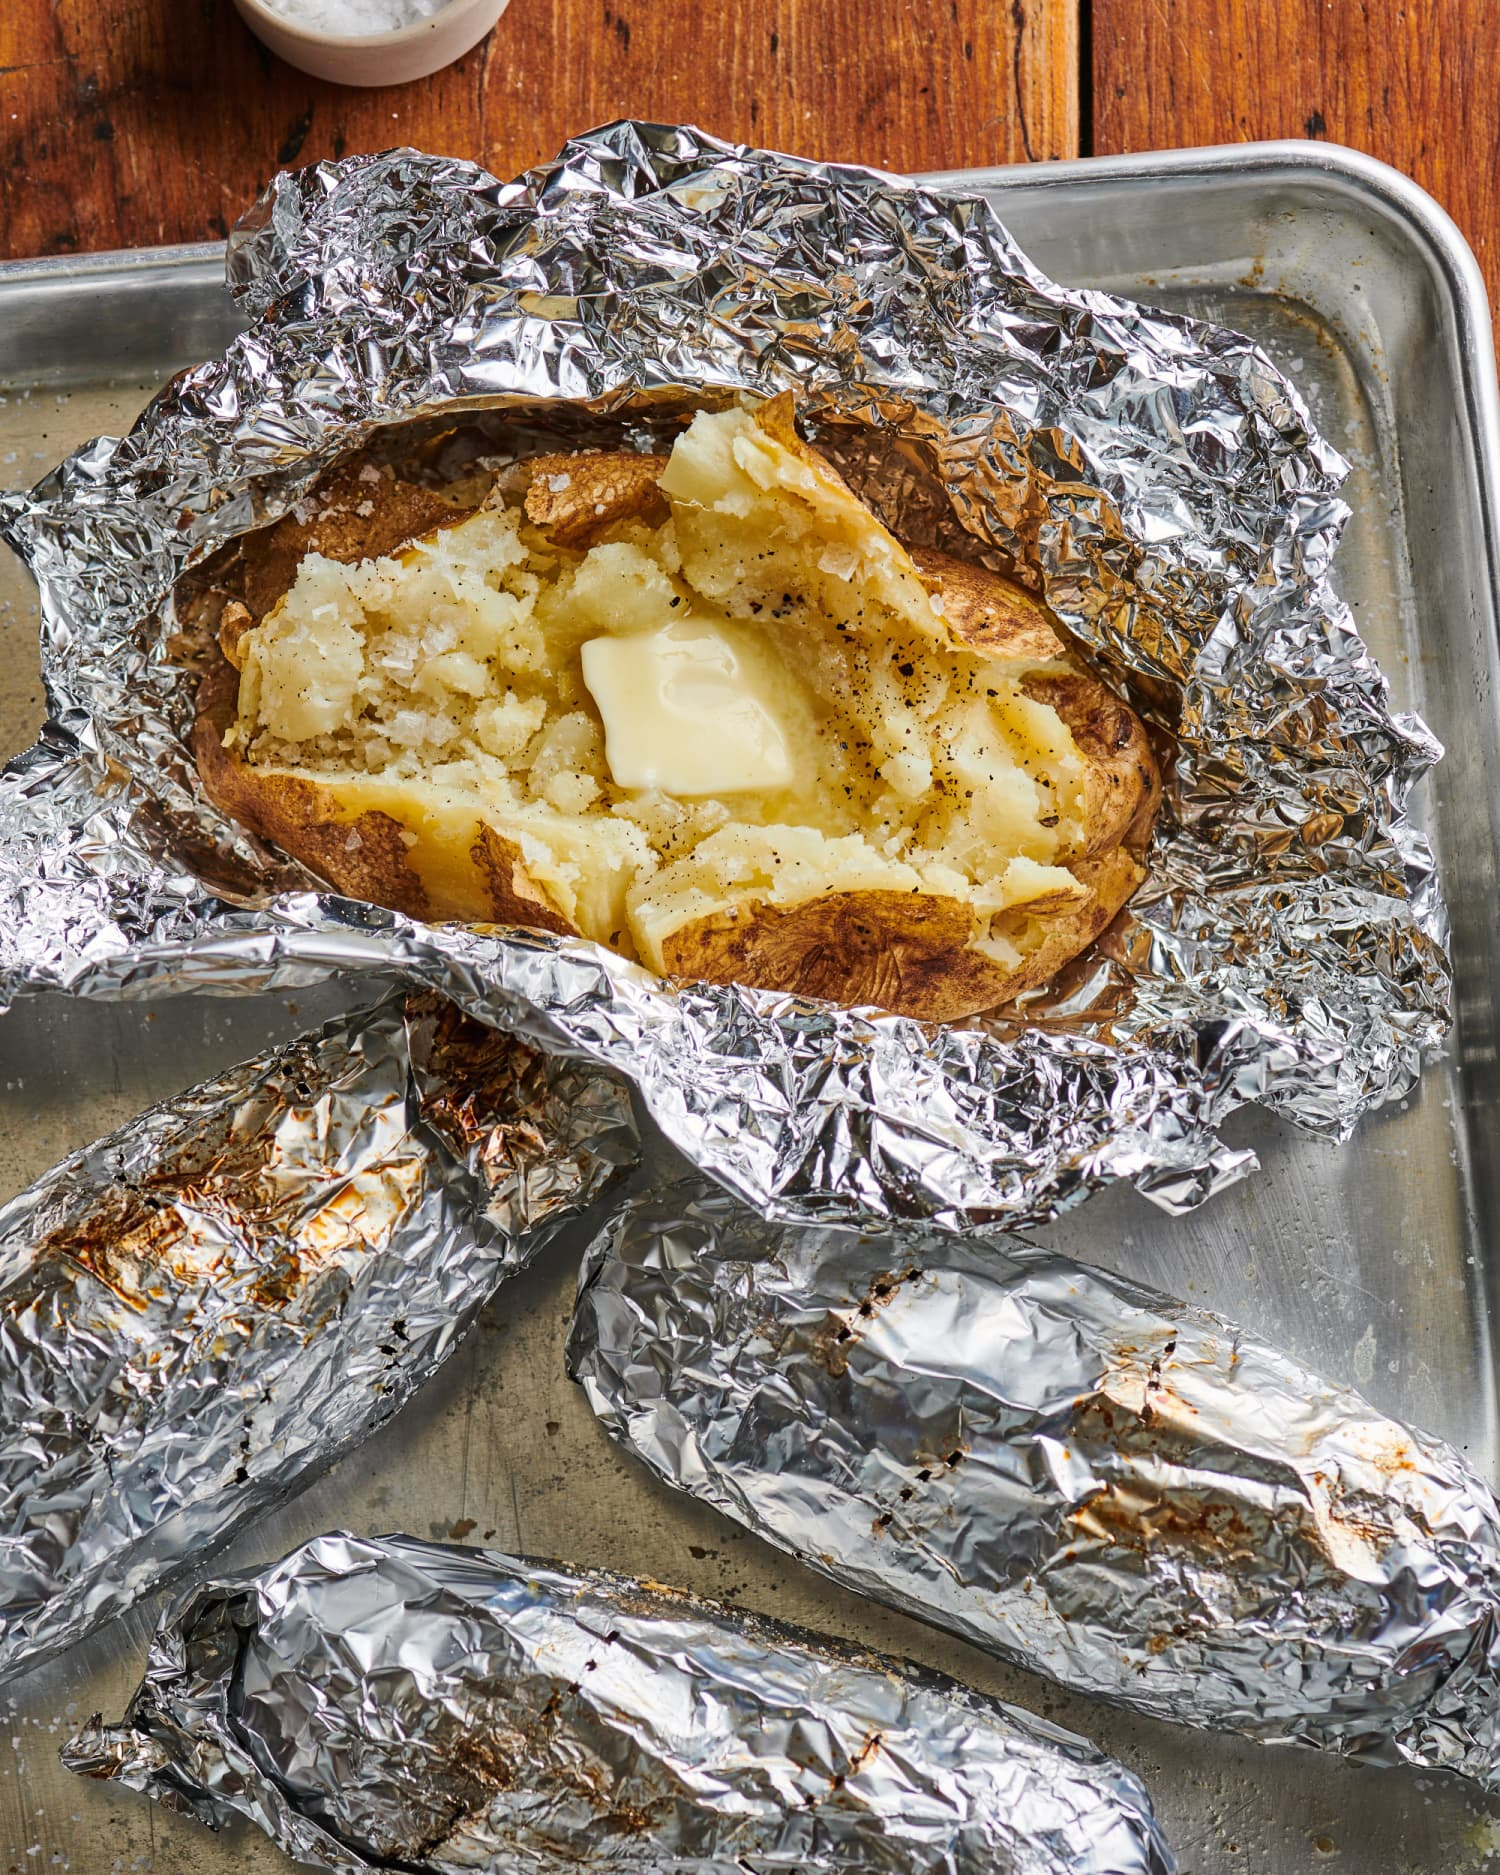 How To Make a Baked Potato on the Grill: A Foolproof Method for Fluffy, Smoky Spuds